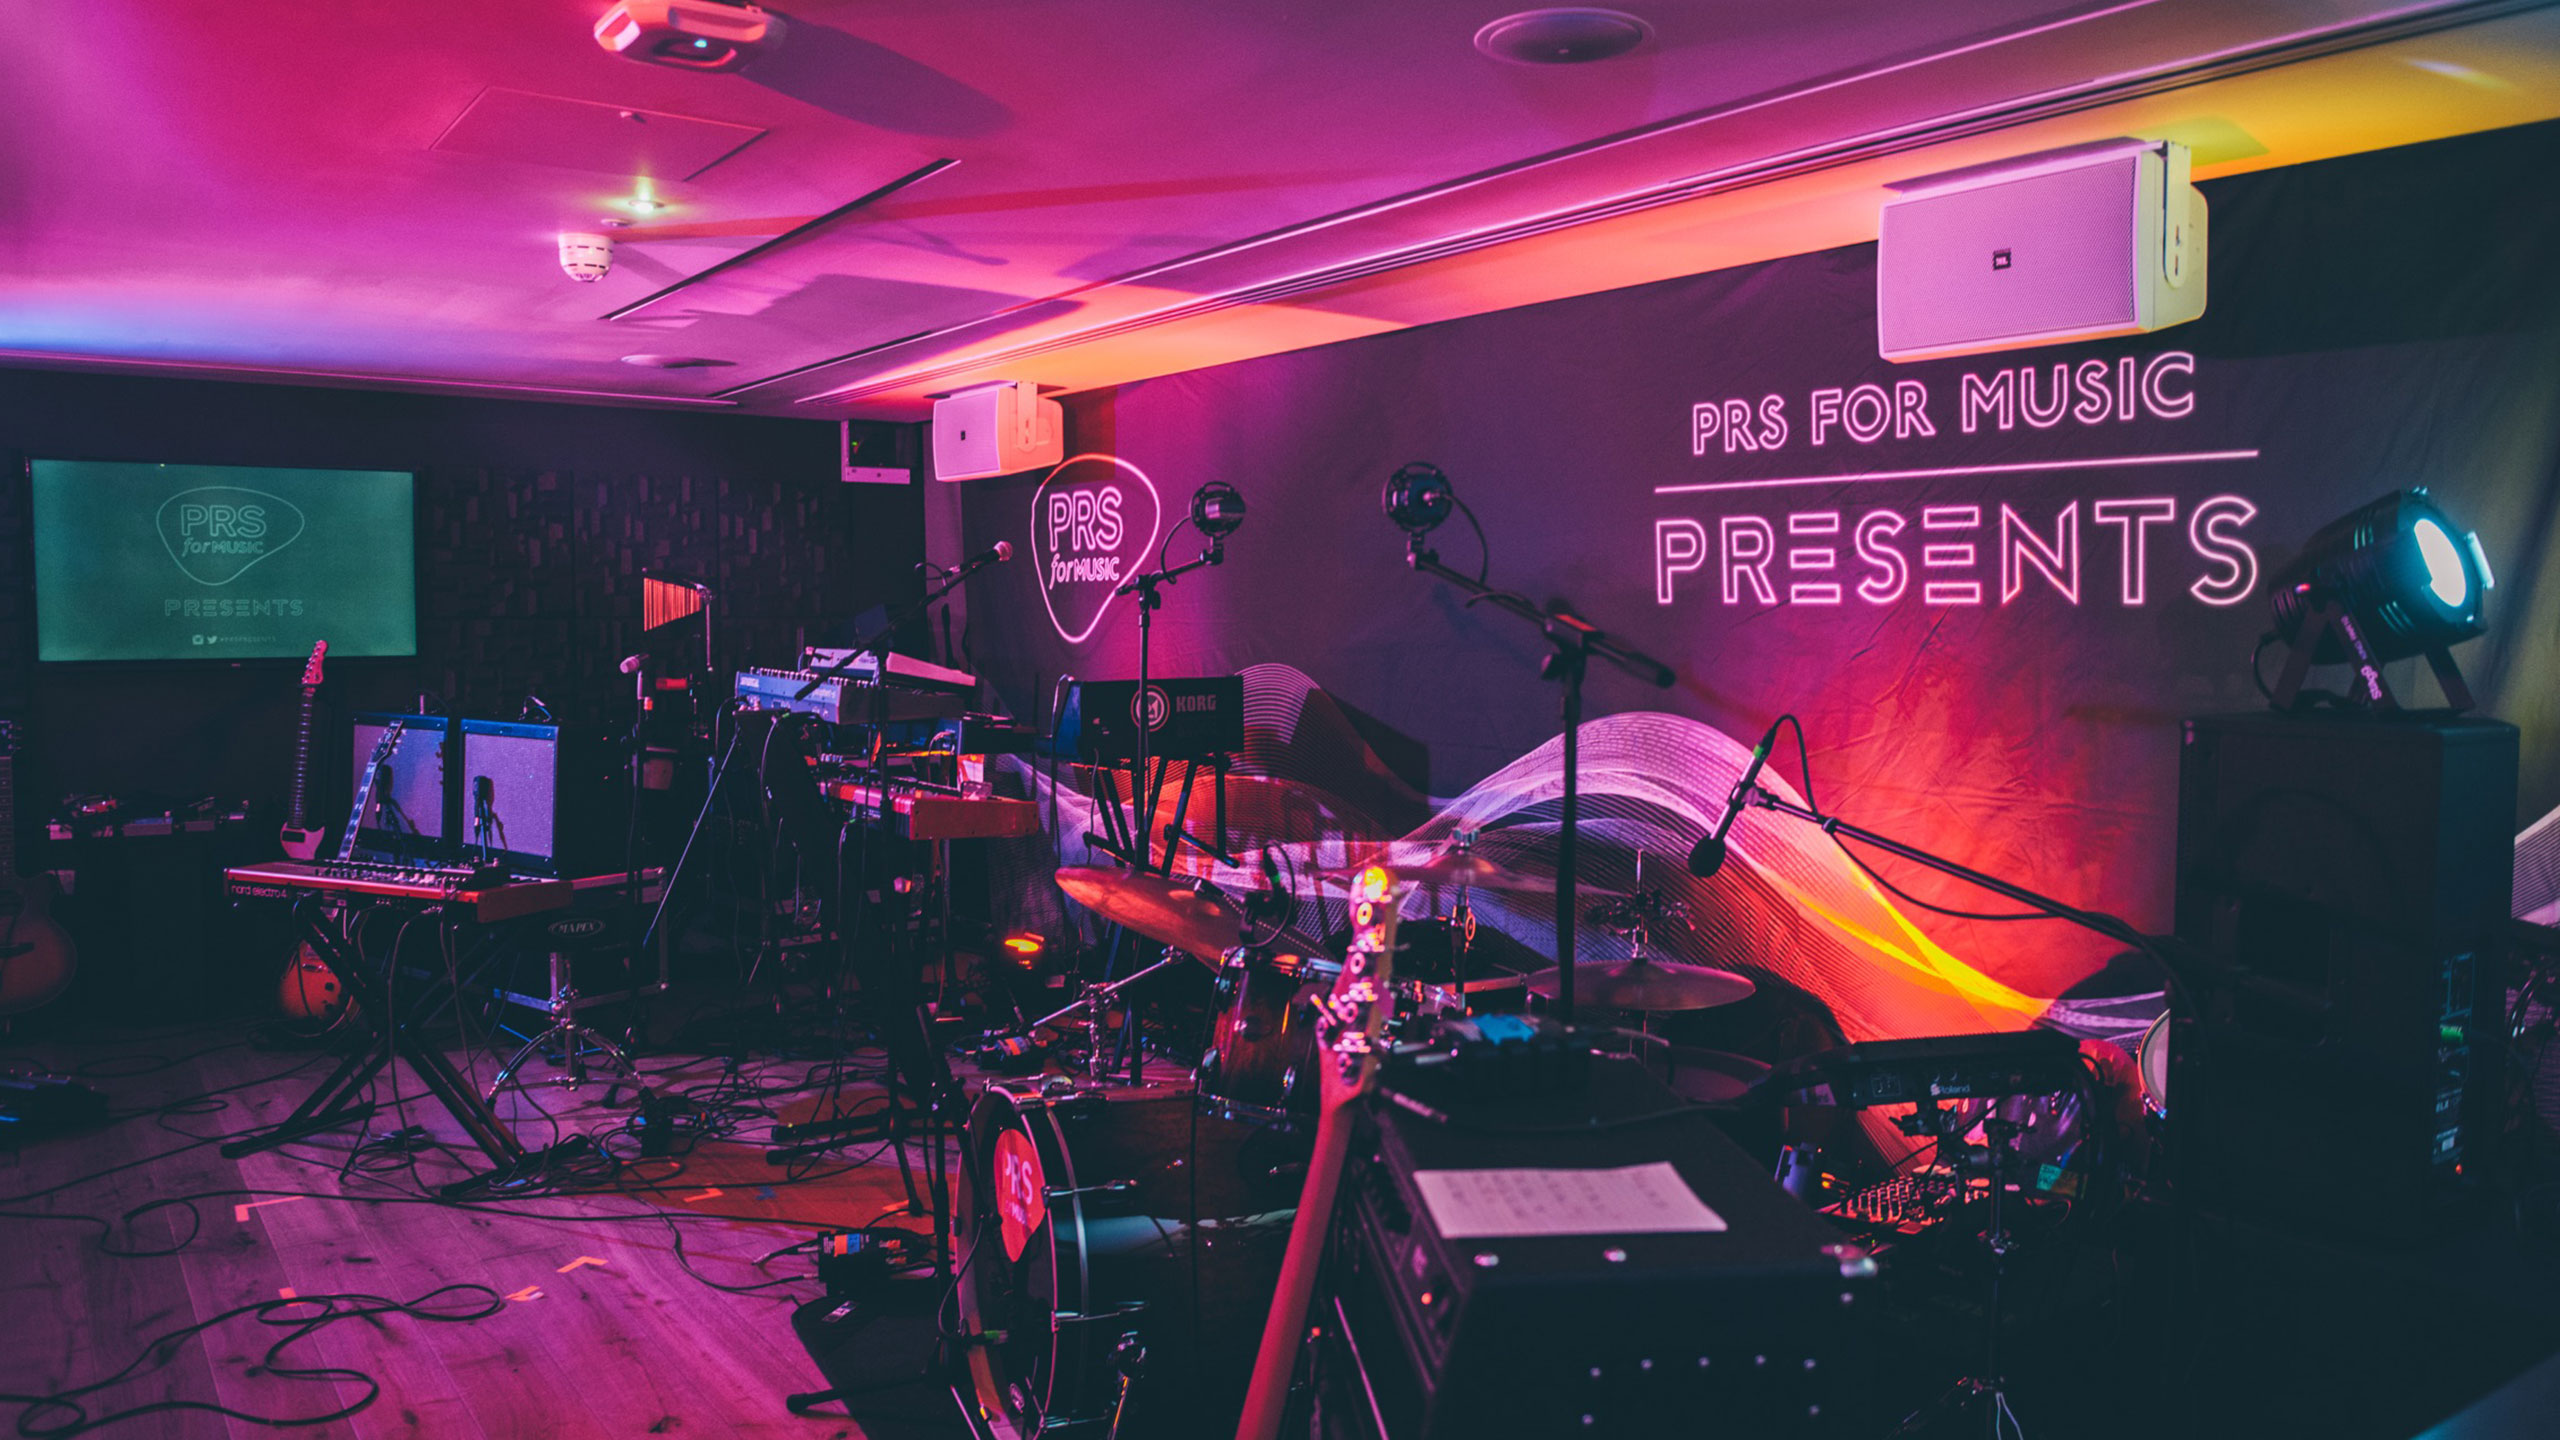 A stage set up ready for a live gig, with PRS for Music Presents as the backdrop